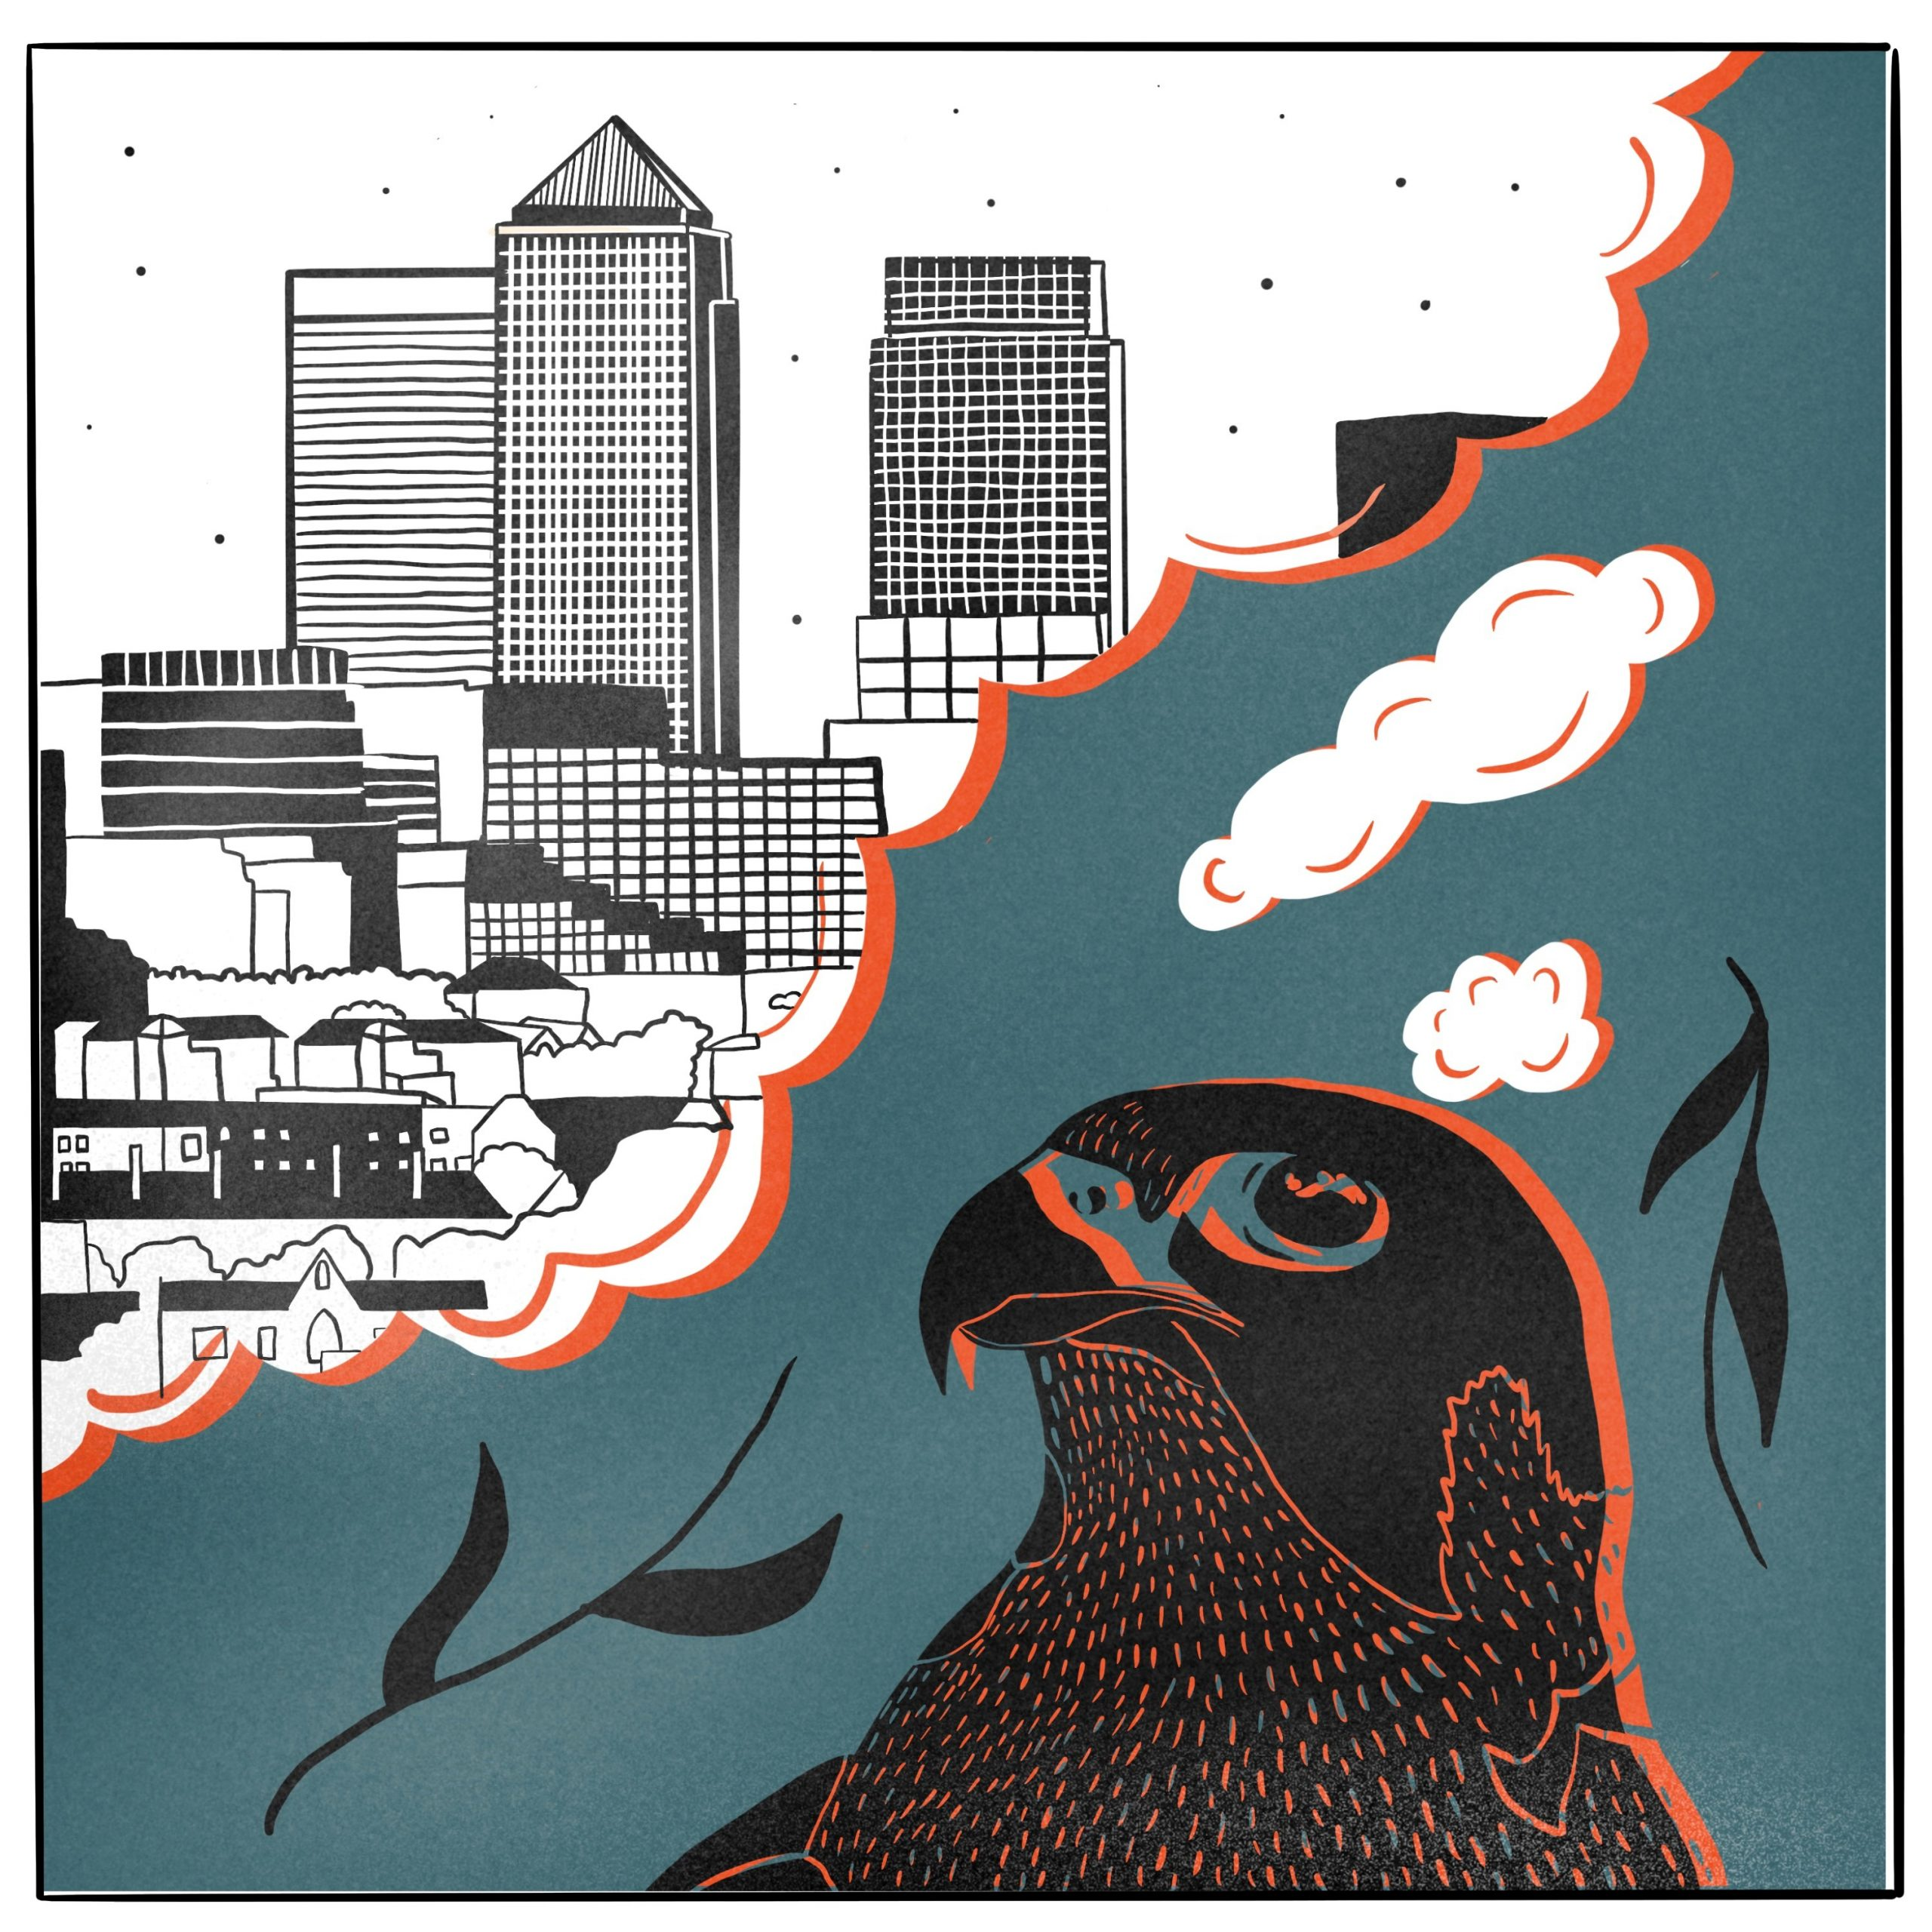 Animal Eyes: Re-design Canary Wharf